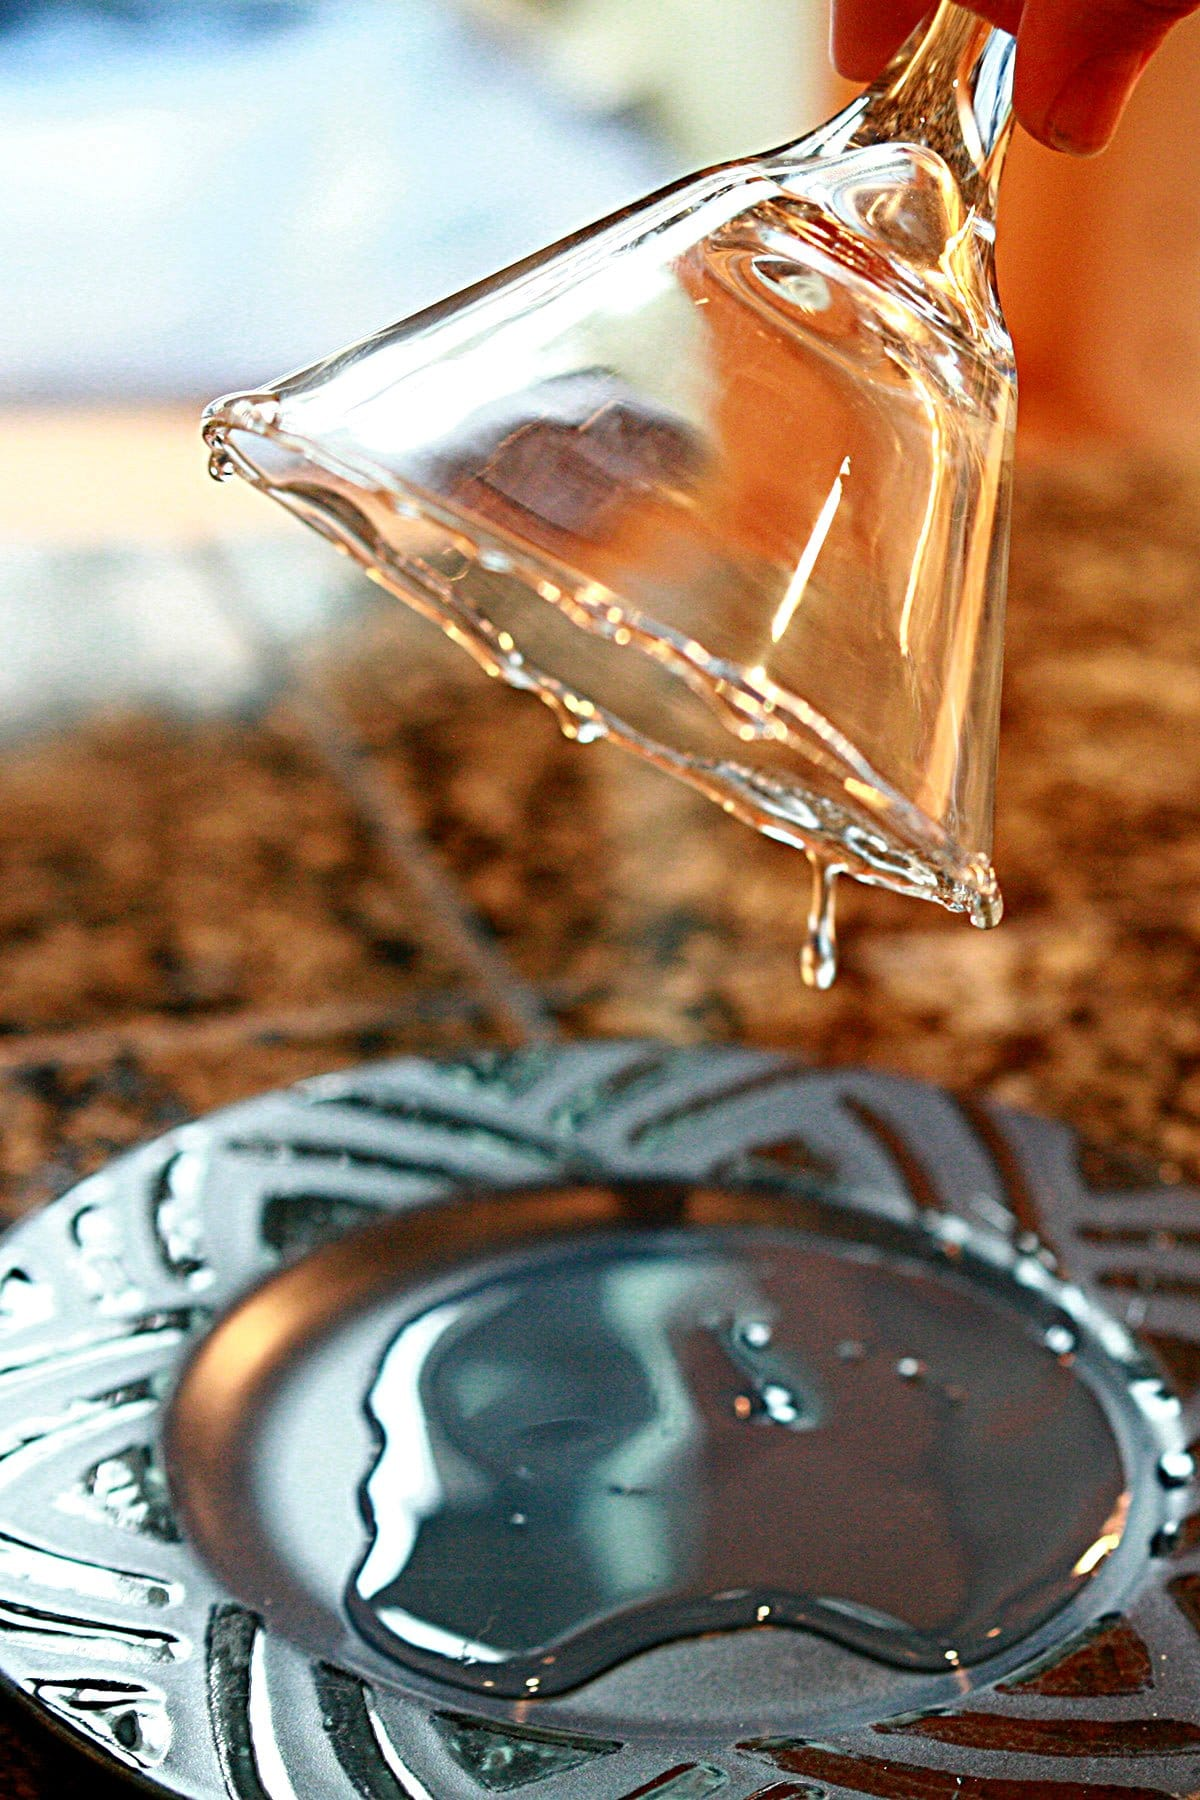 A hand holds a martini glass upside down over a blue plate, allowing excess corn syrup to drip off.